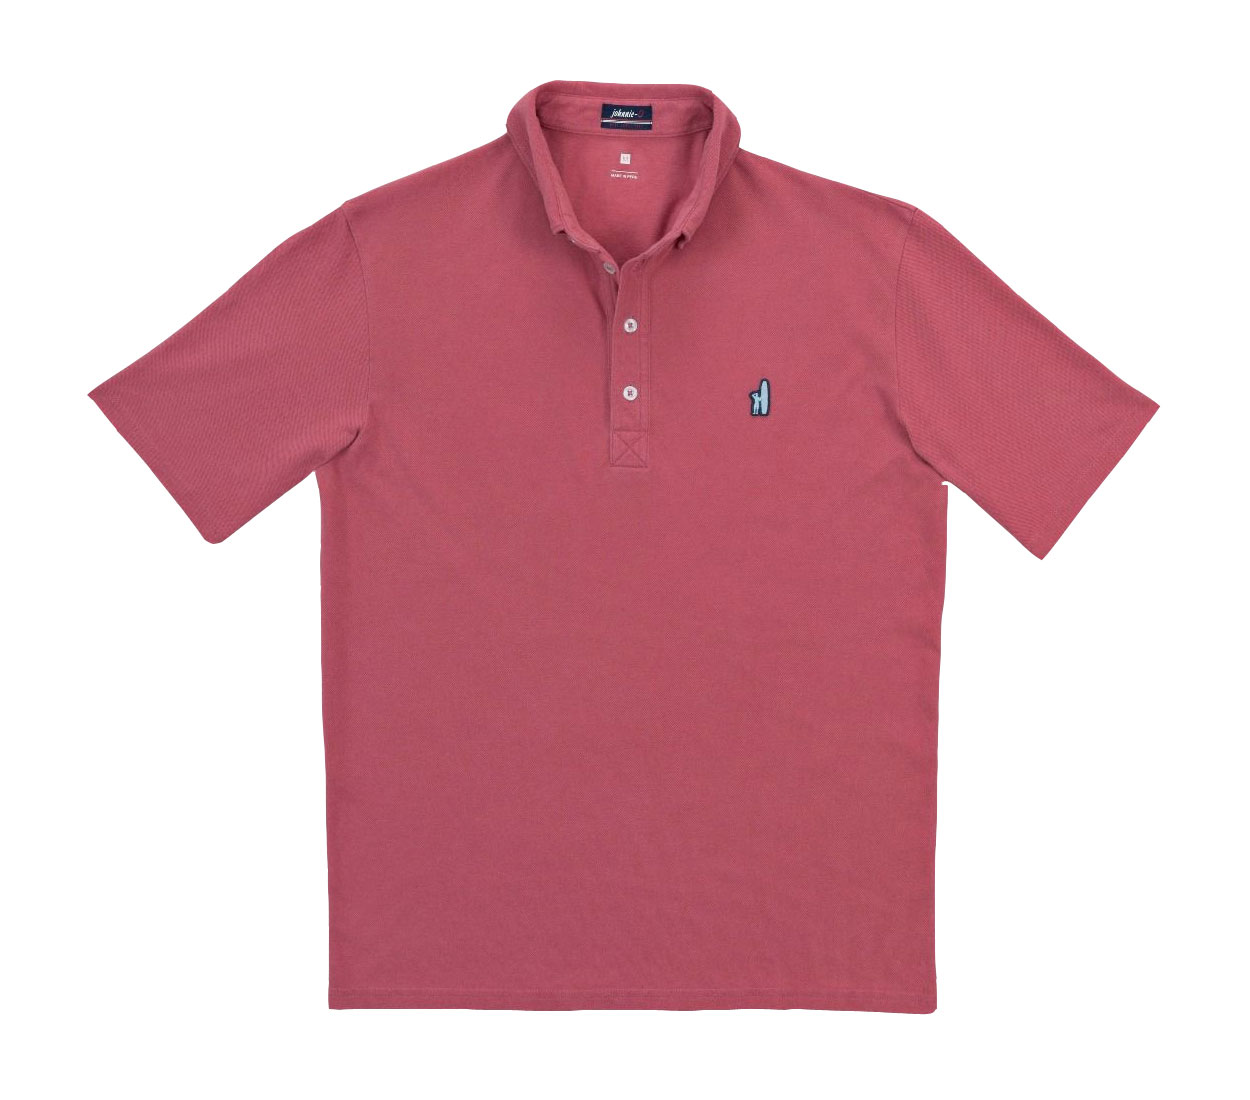 Johnnie-O Mens Redondo Cotton Pique Polo